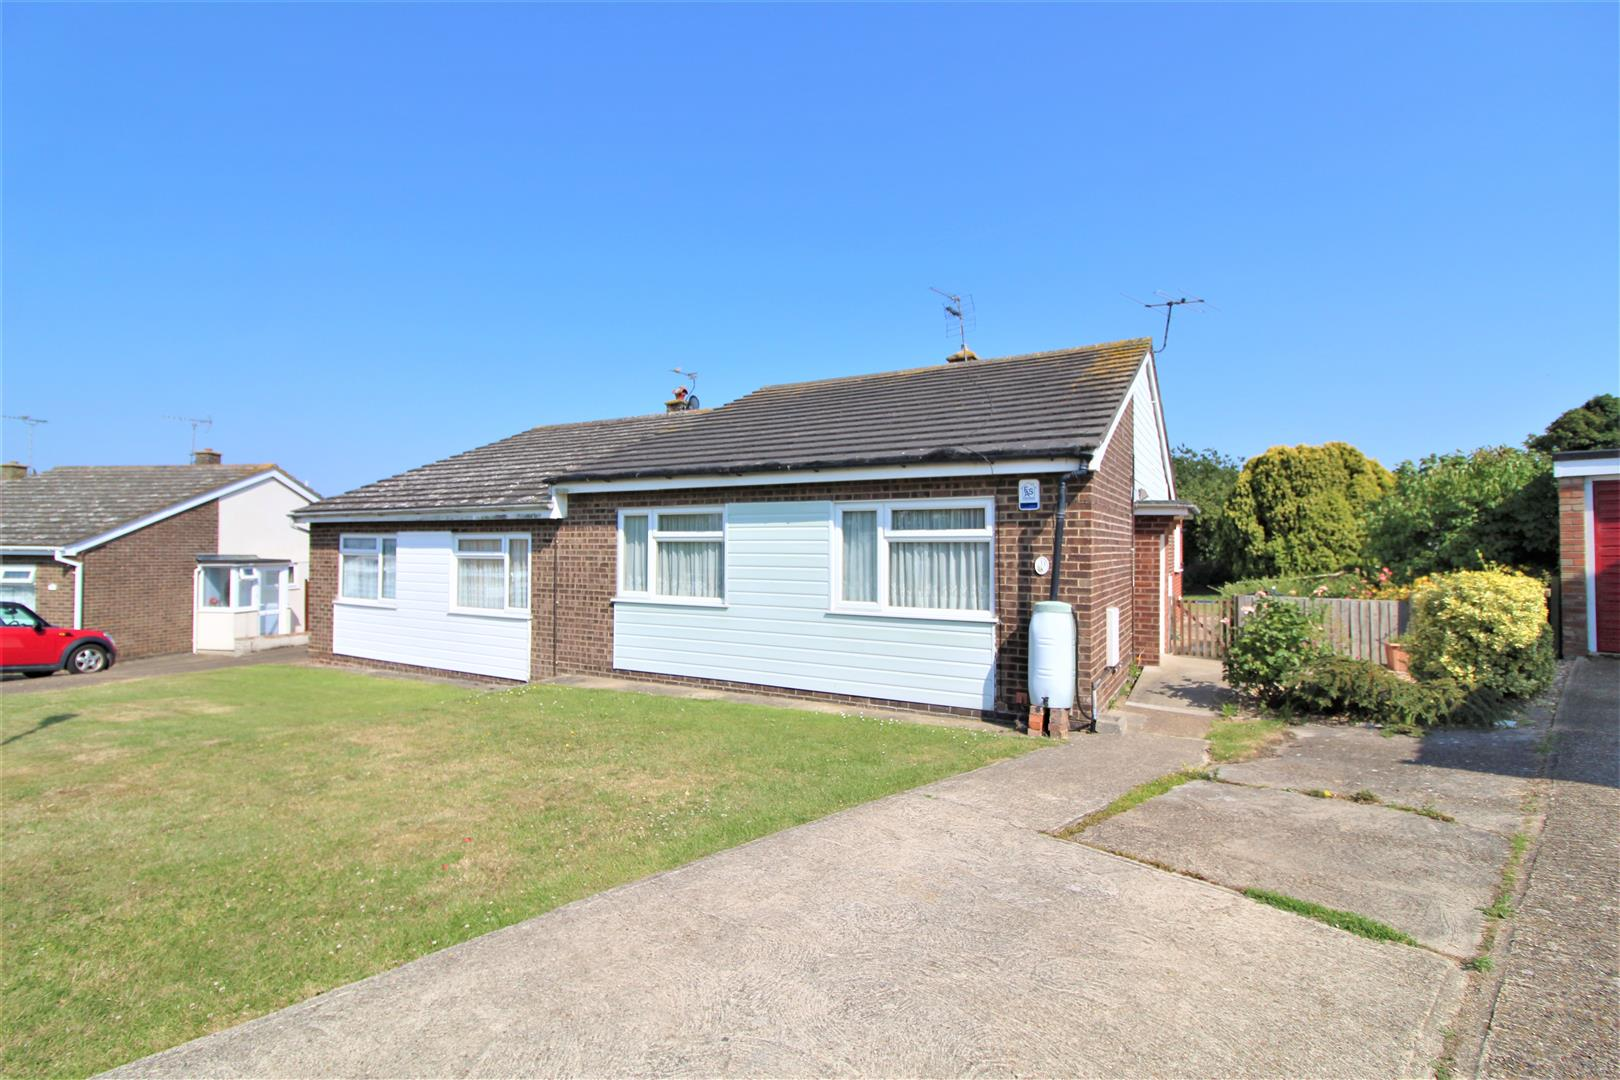 Hillcrest, Kirby-Le-Soken, Essex, CO13 0EB